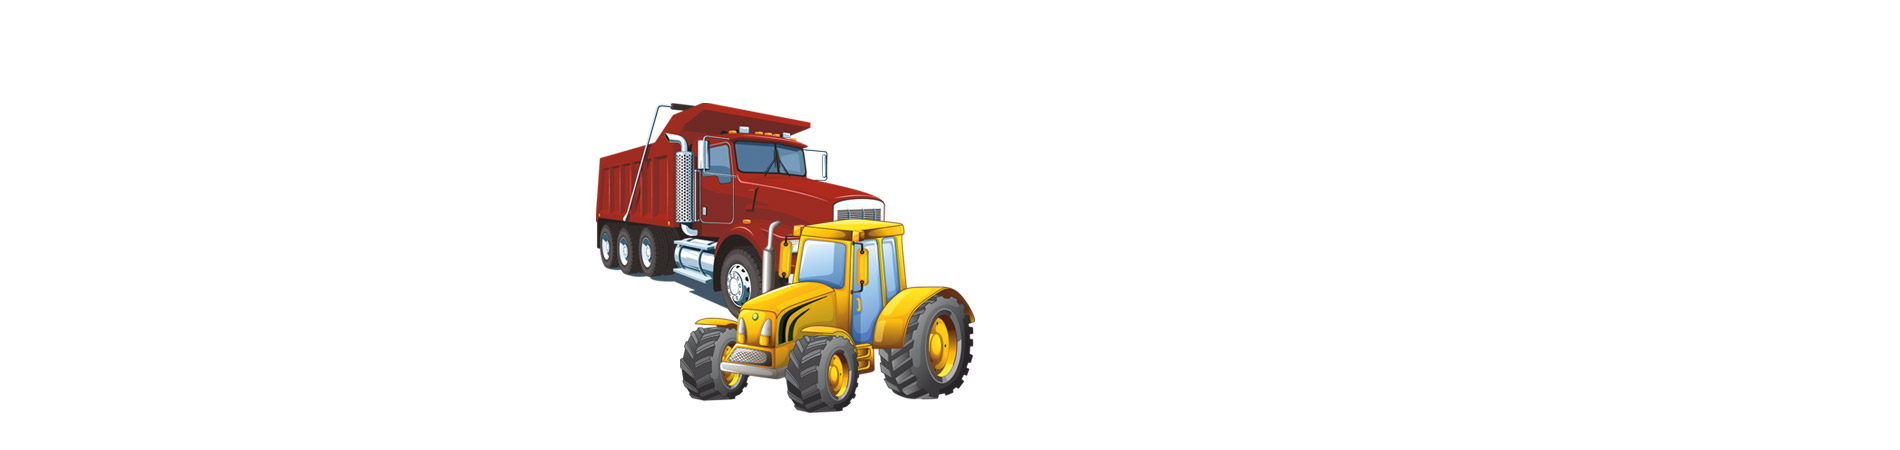 Dump and Tractor